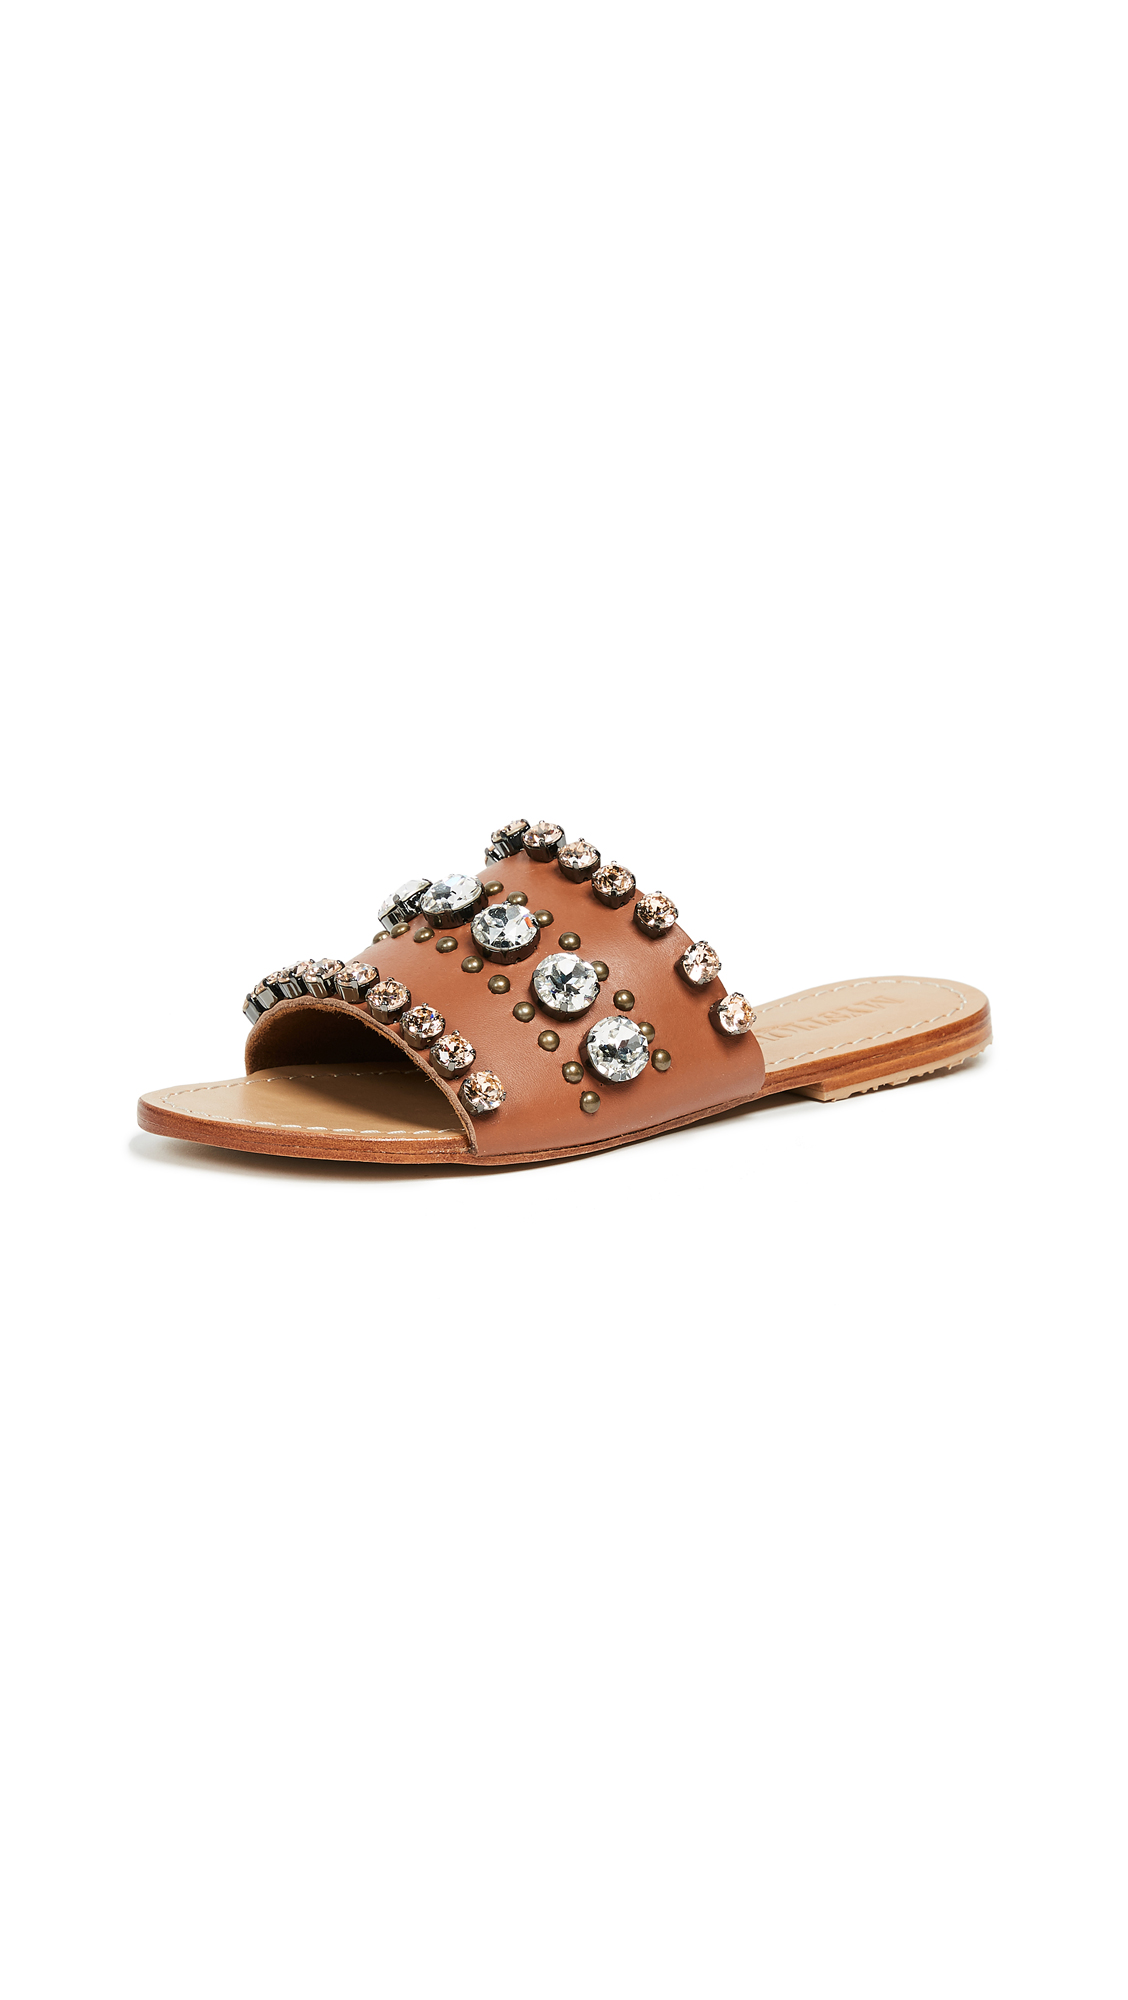 Mystique Jewel Slides - Brandy